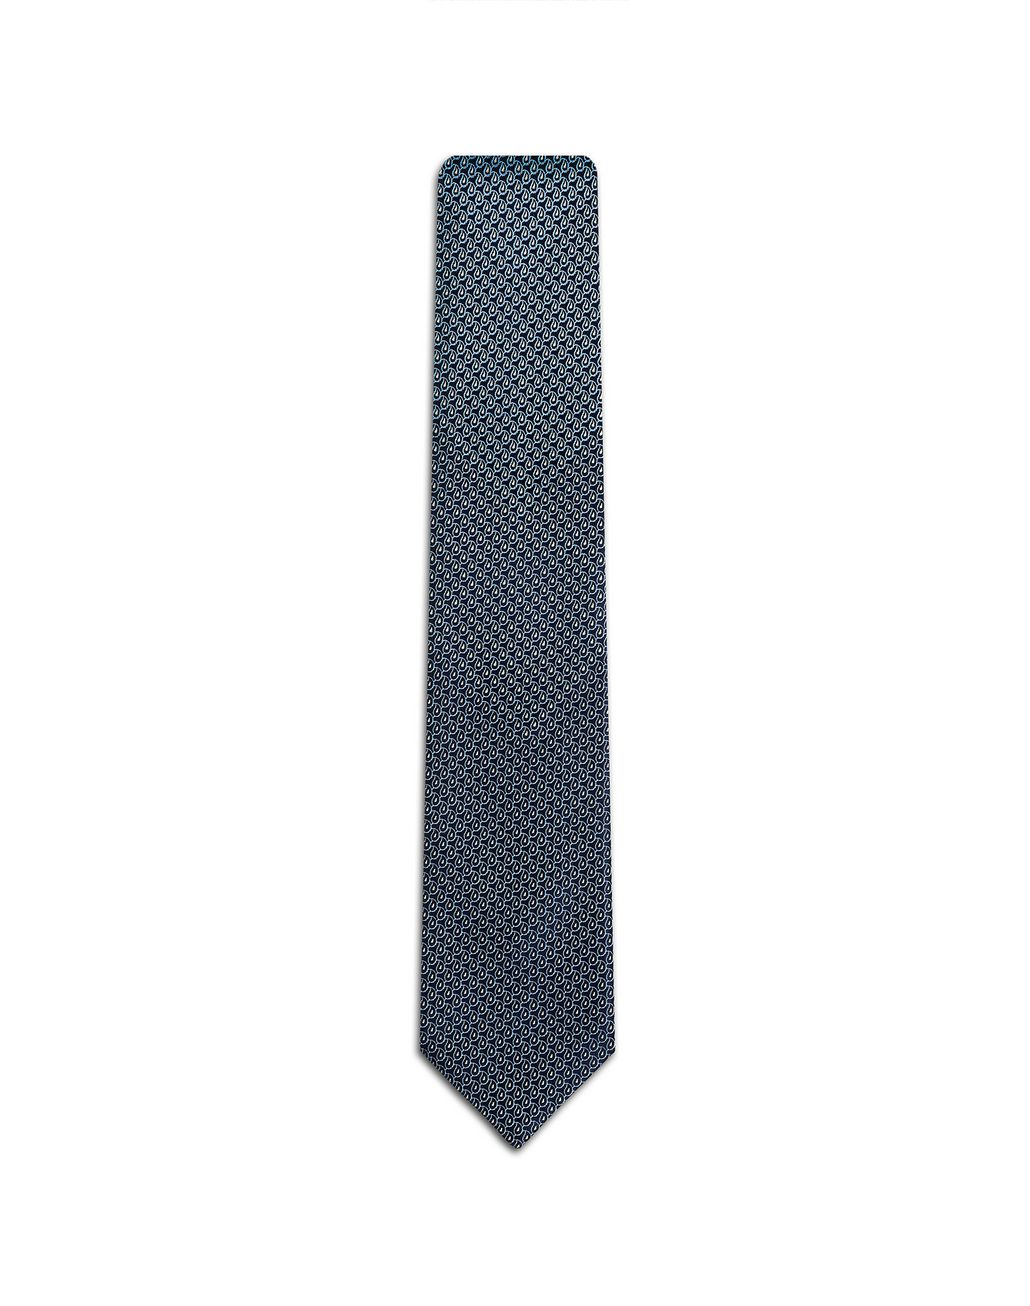 BRIONI Midnight Blue Degradé Tie Tie Man f